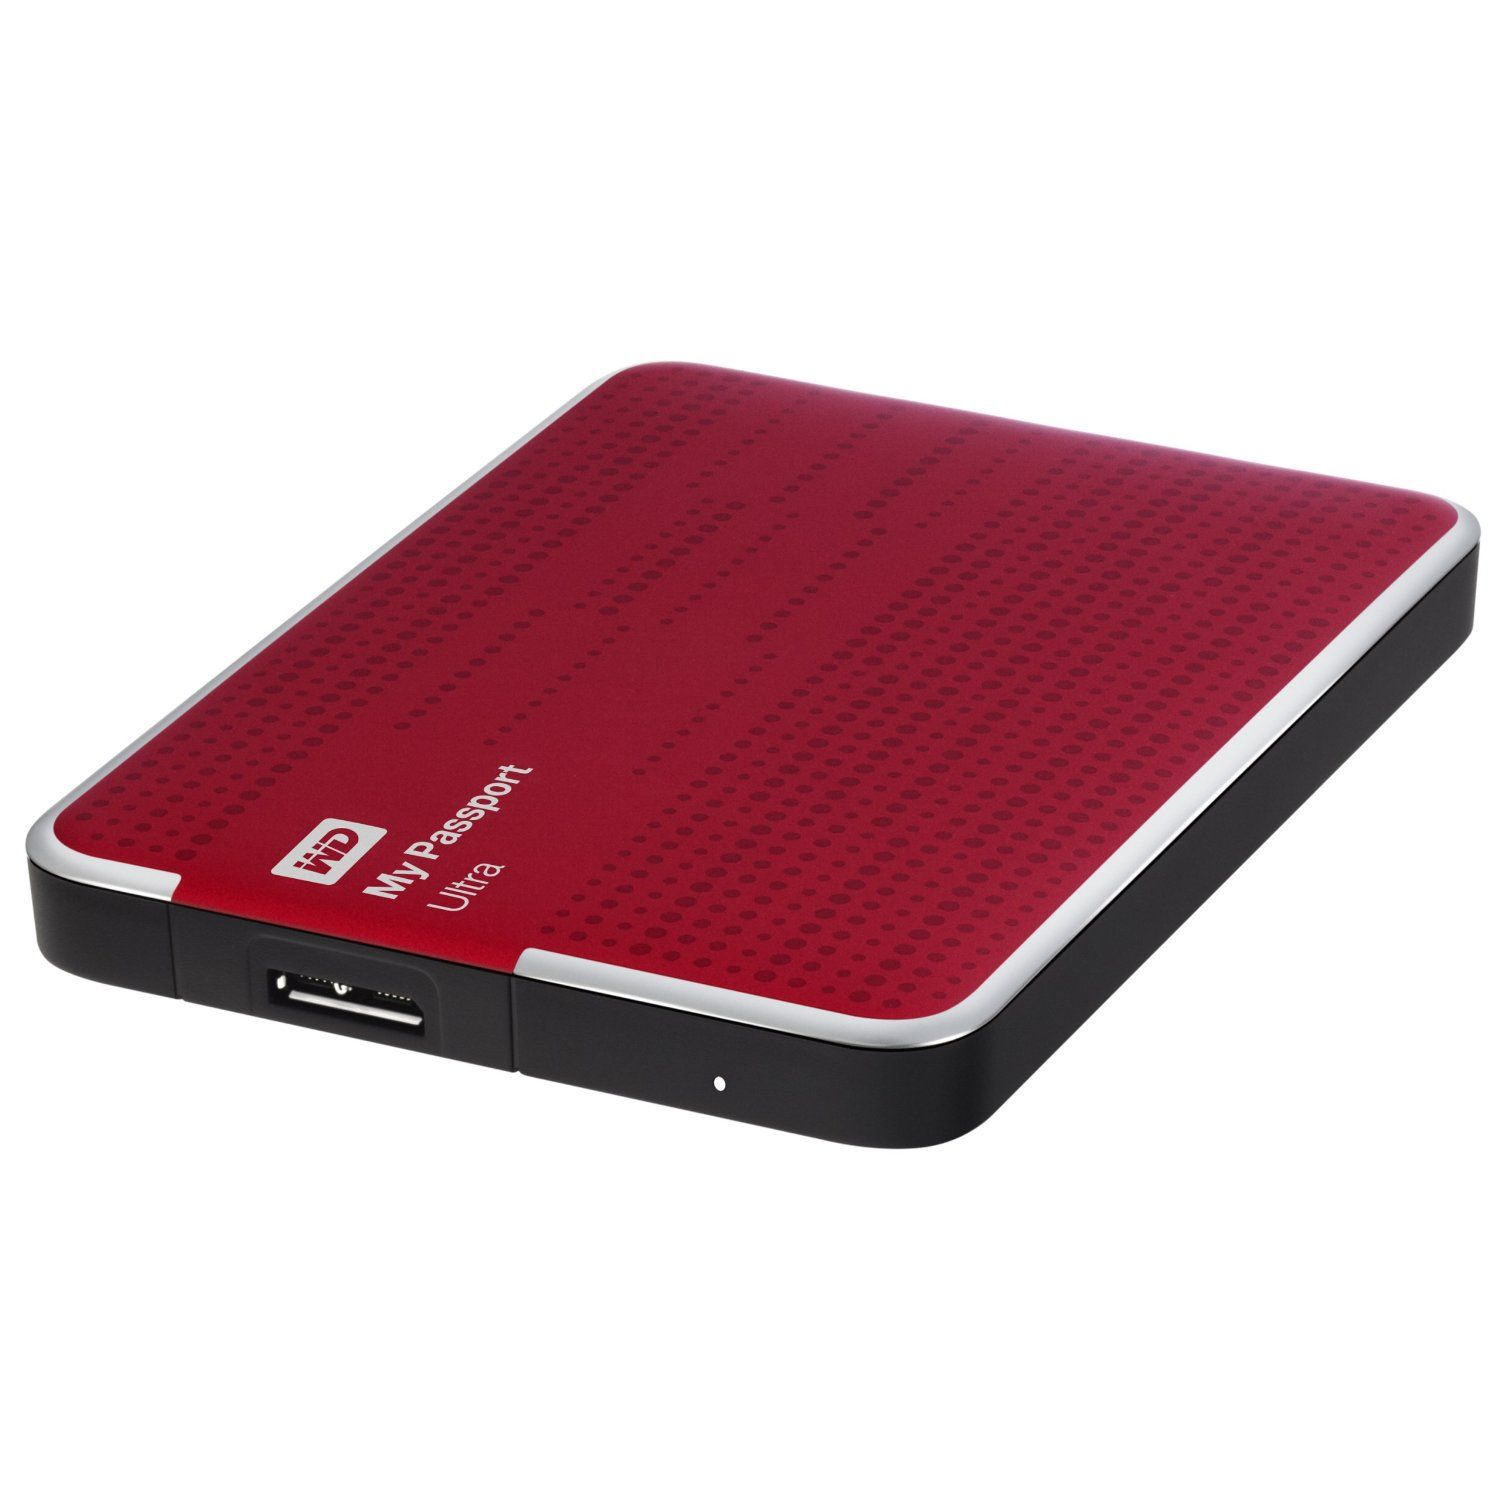 Amazon Com Wd My Passport Ultra 1tb Portable External Hard Drive Usb 3 0 With Auto And C Portable External Hard Drive Portable Hard Drives External Hard Drive